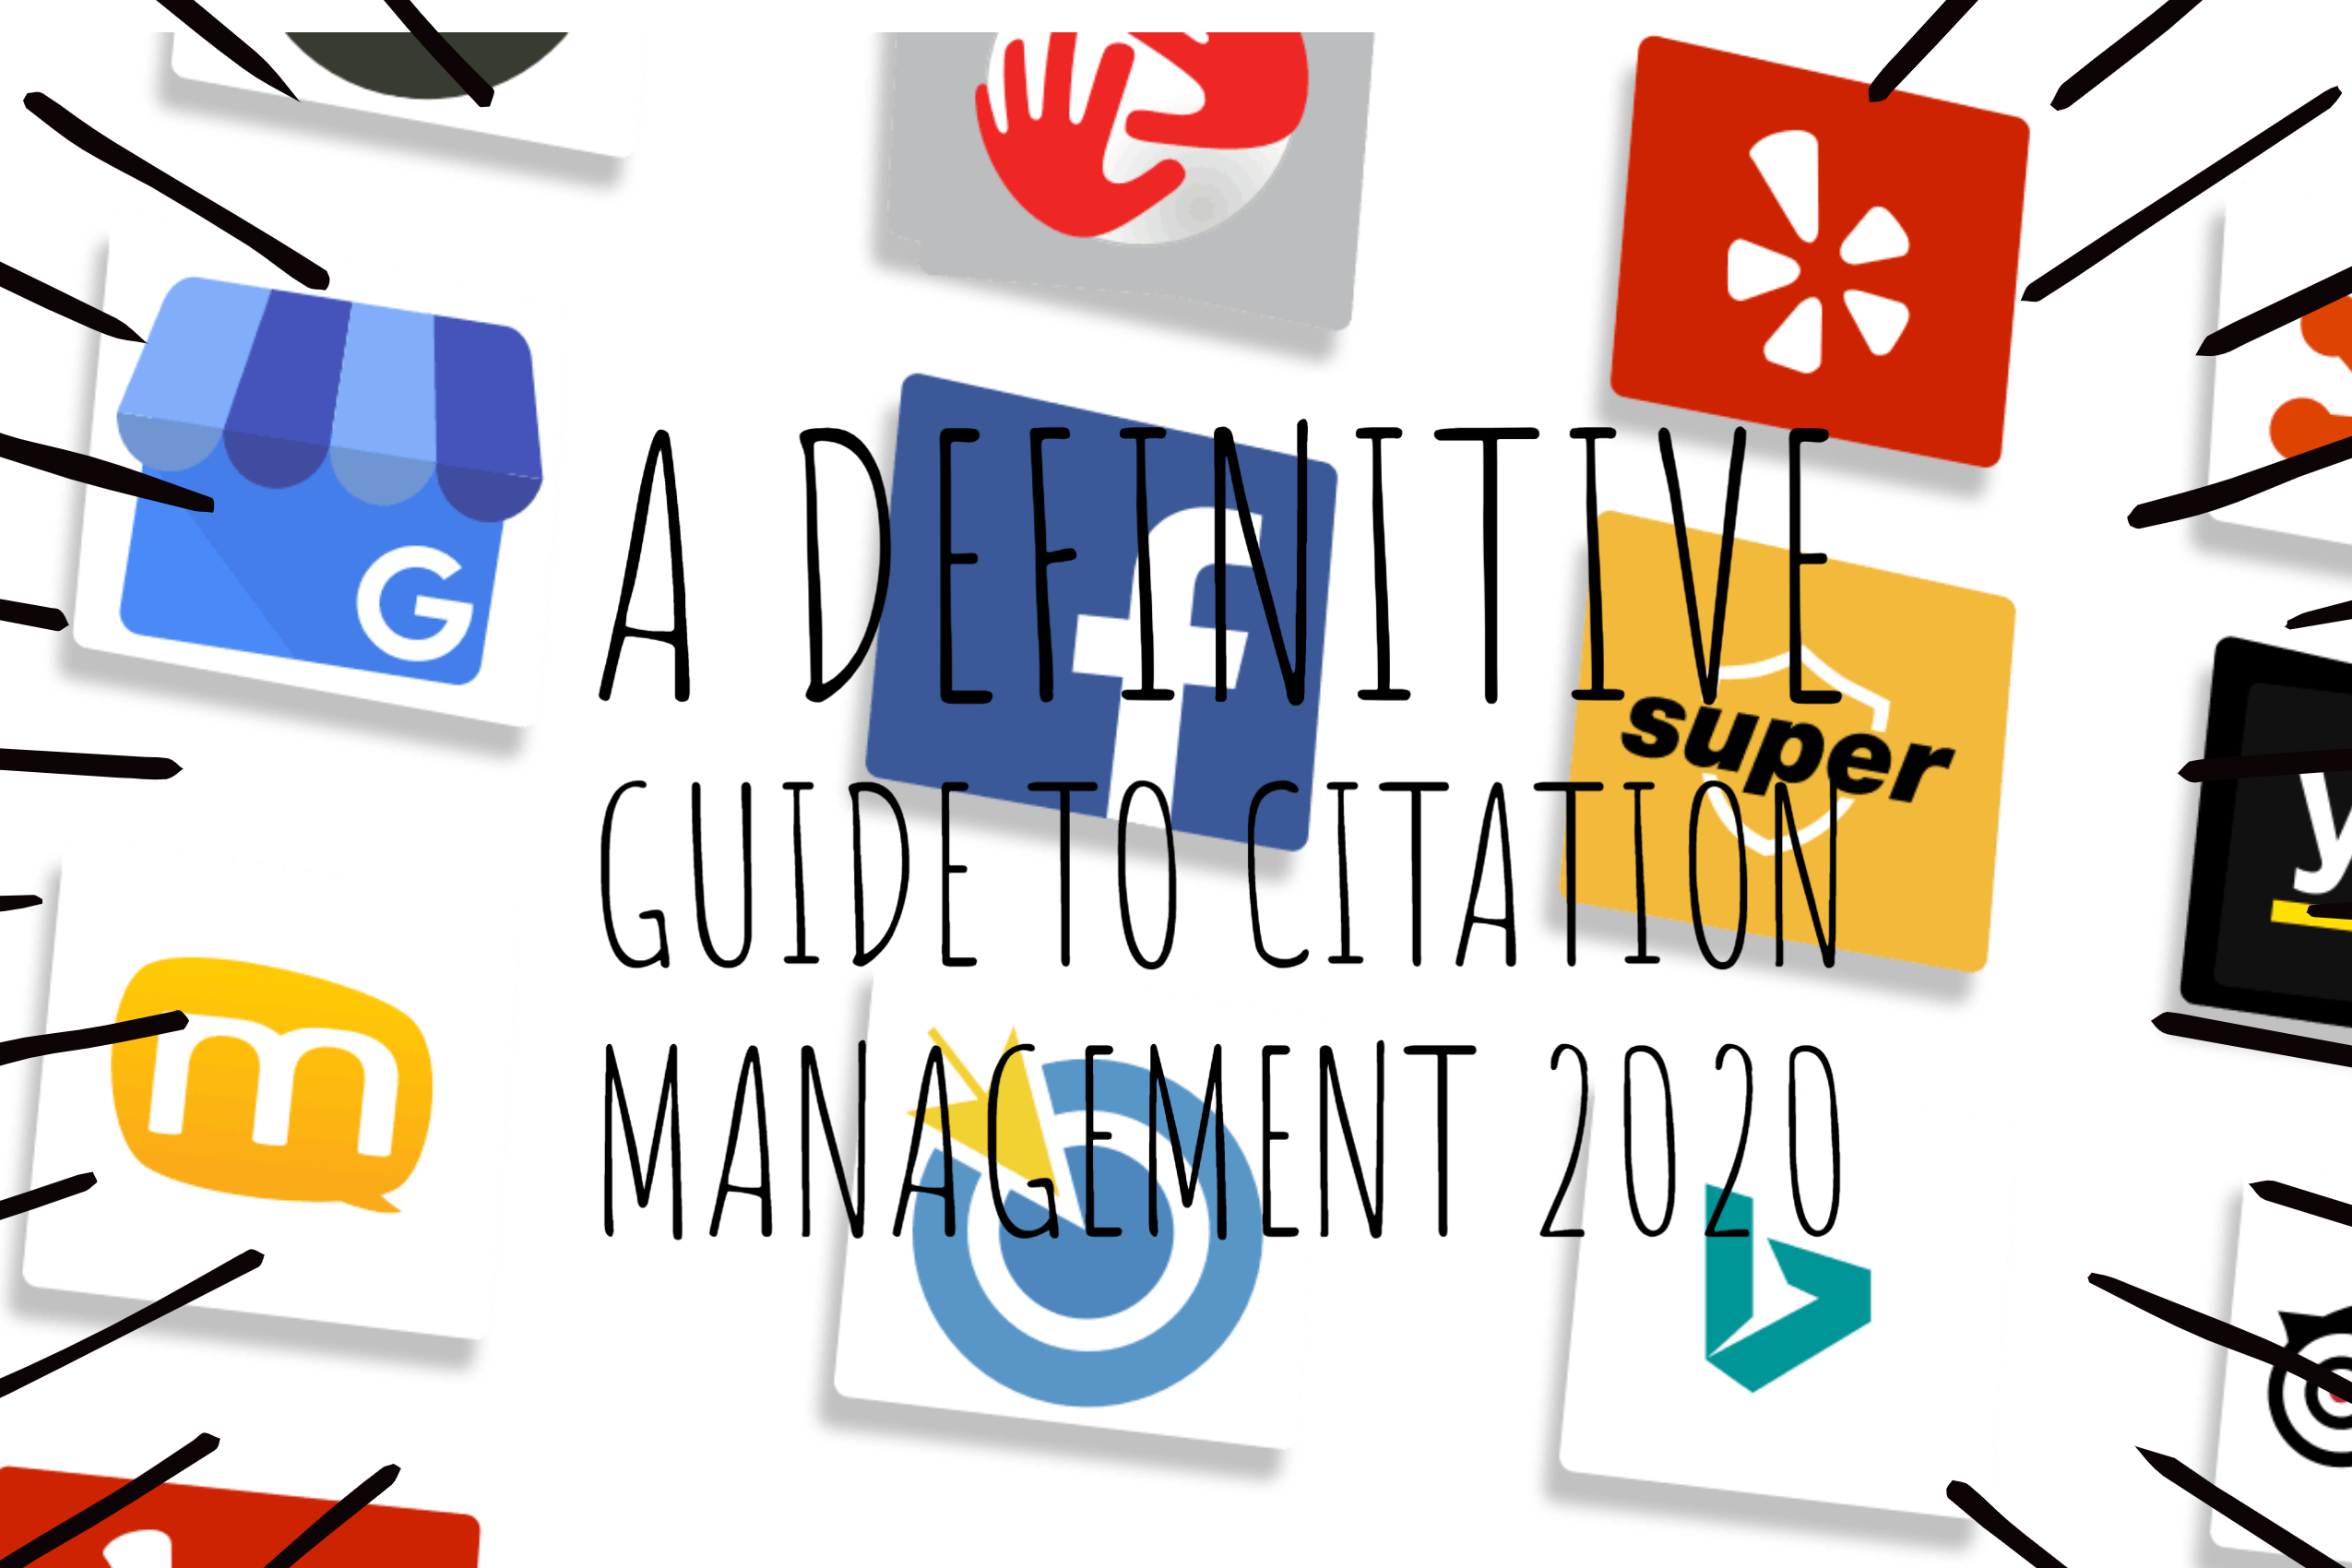 A Definitive Guide to Citation Management 2020